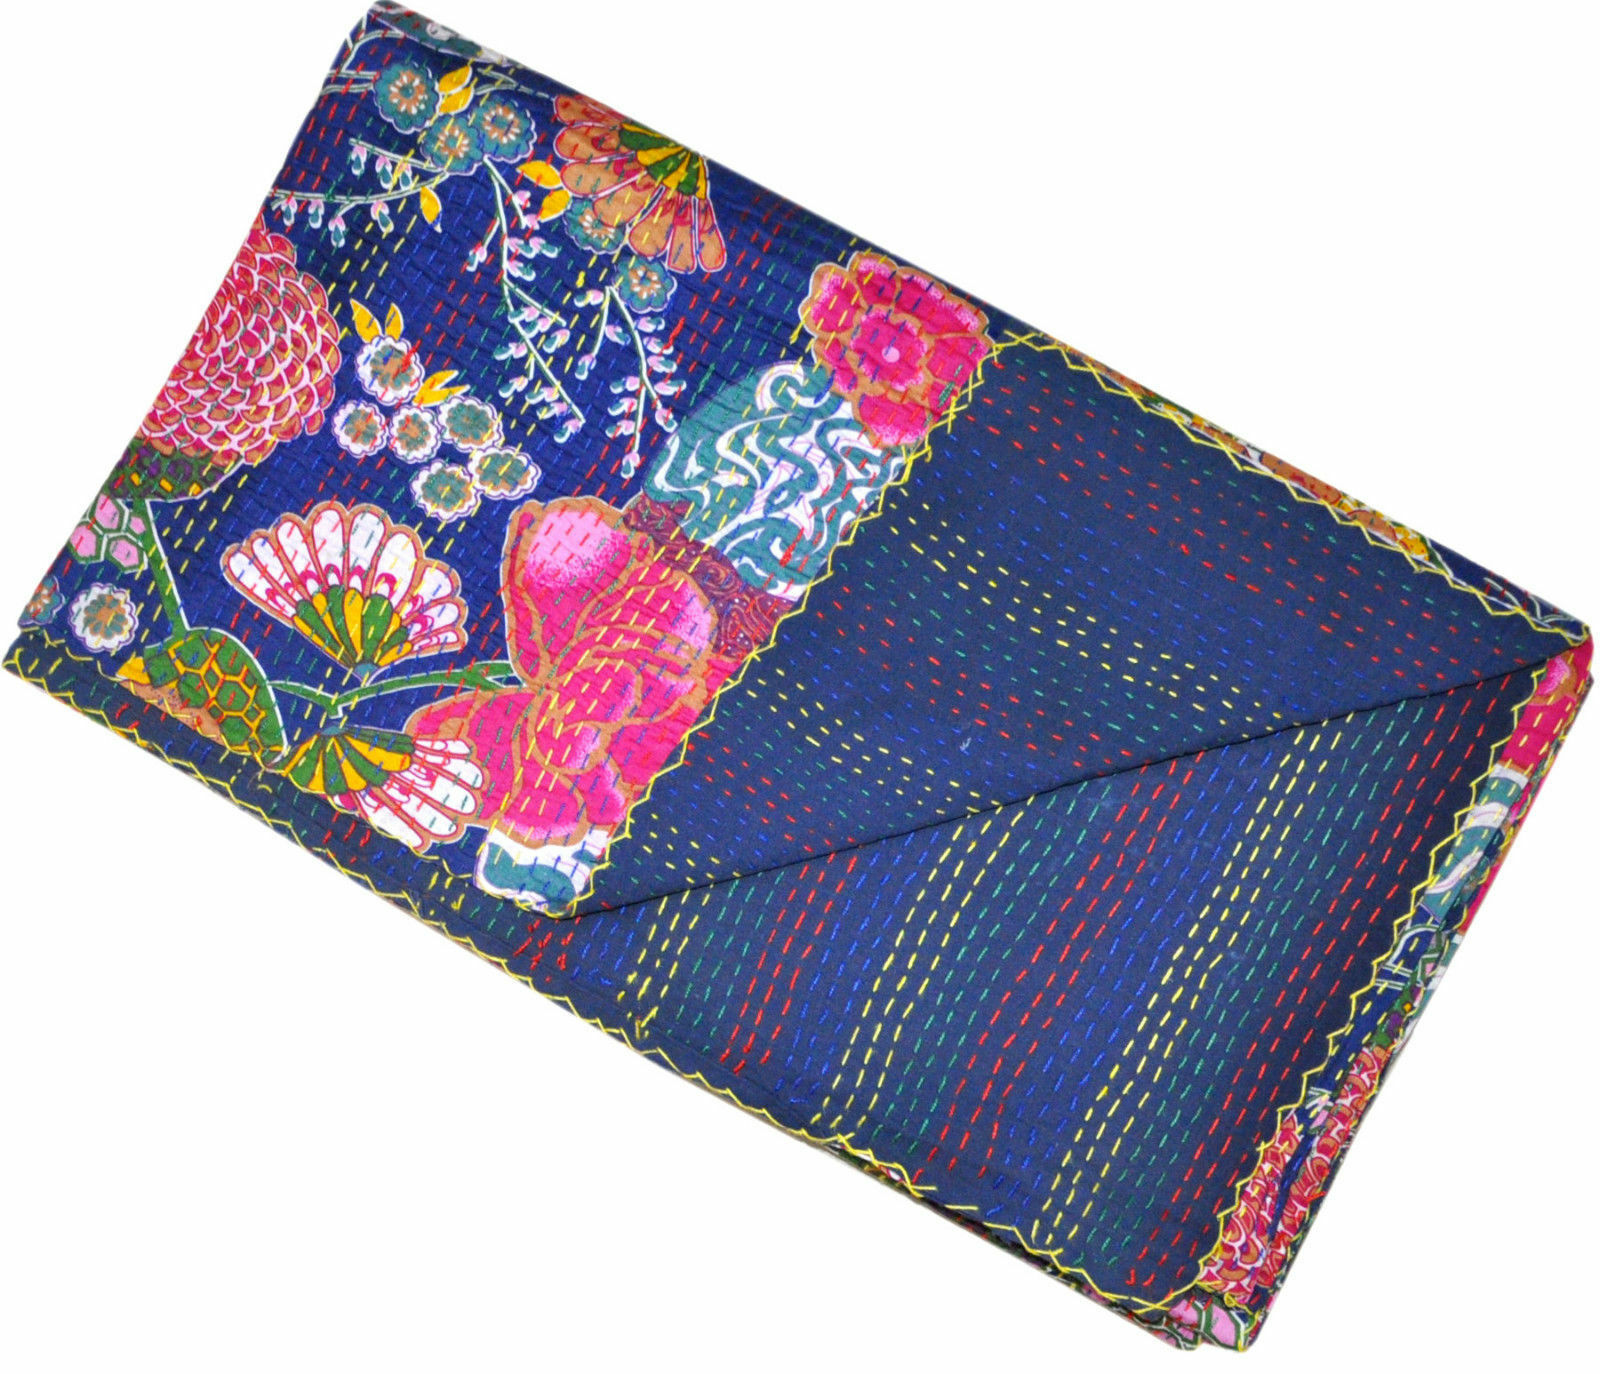 Indian Handmade Fruit Floral Queen Size Reversible Kantha Quilt Ethnic Beds